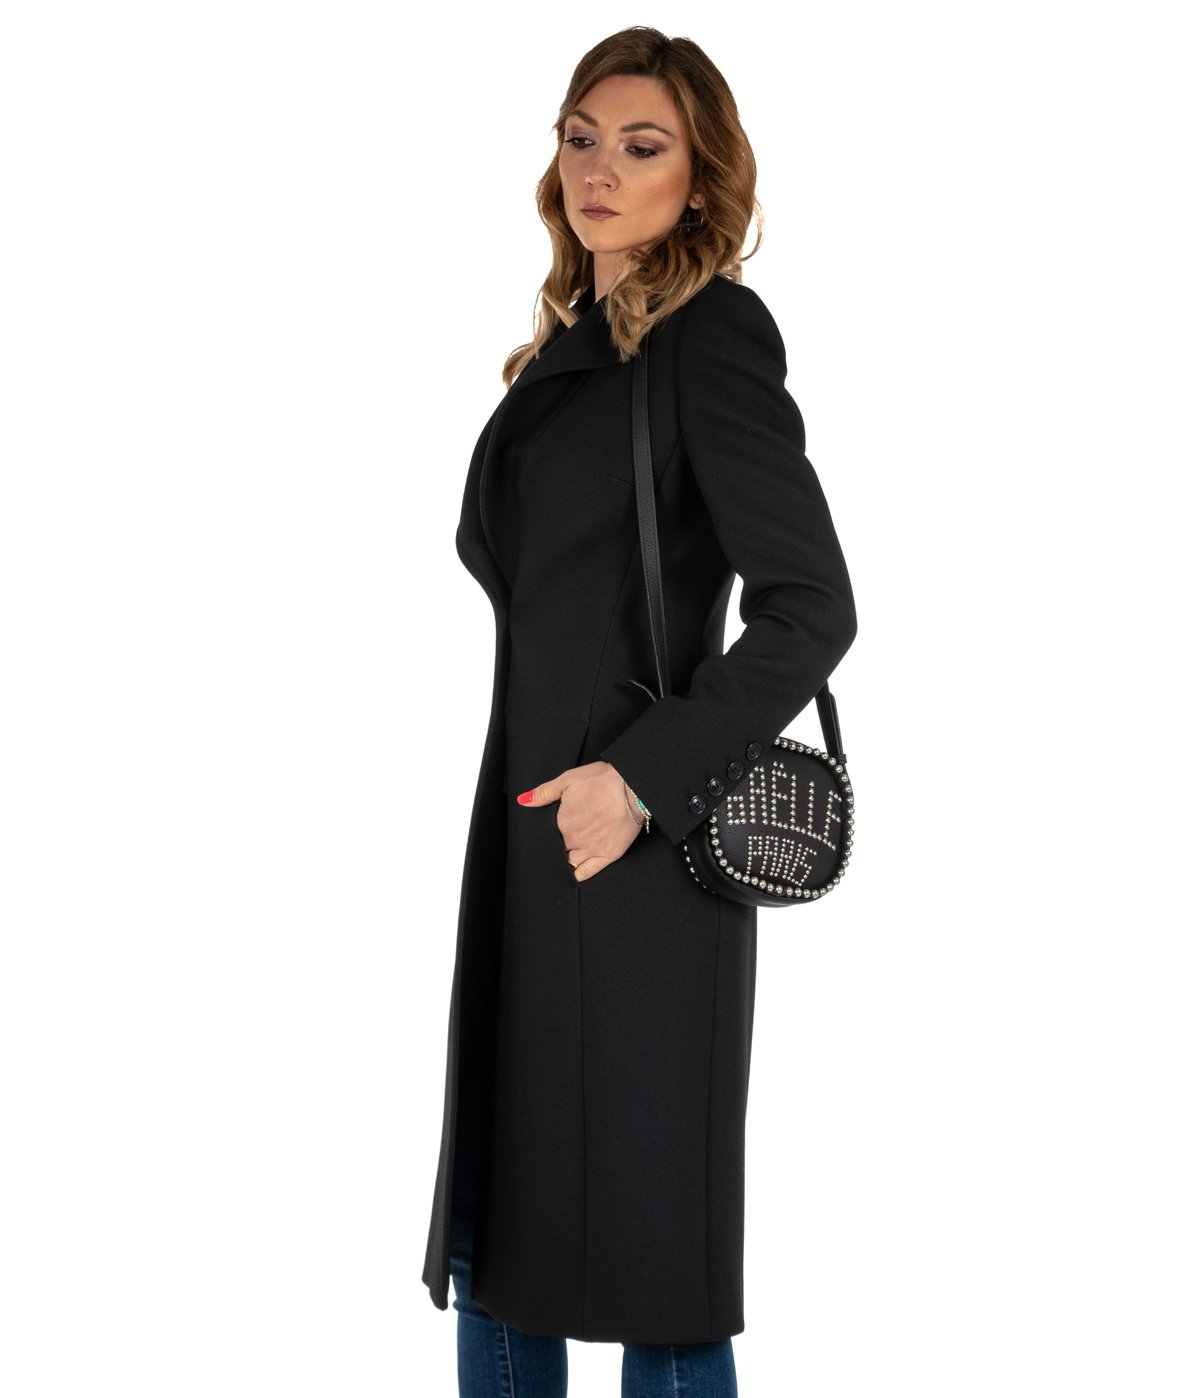 super popular 5ff81 d319a CAPPOTTO DONNA NENETTE NERO LUNGO SLIM FIT 26BB-VIANI WOMAN BLACK COAT